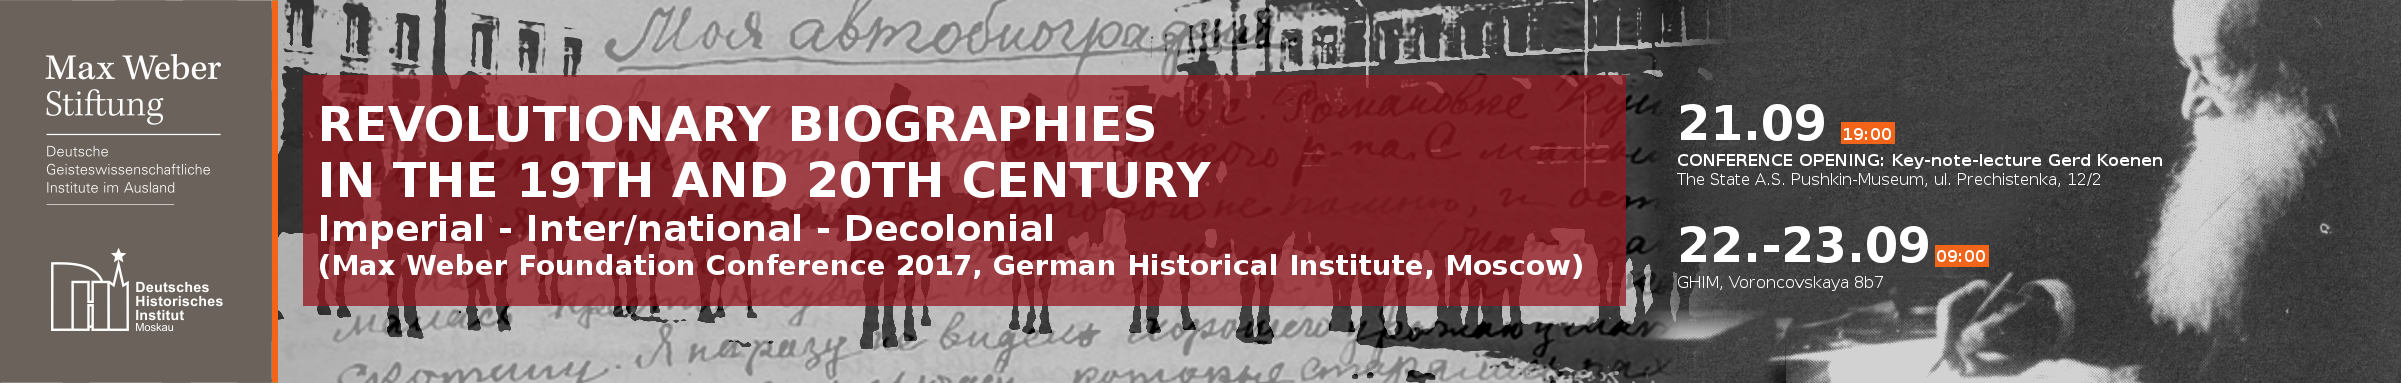 Revolutionary Biographies in the 19th and 20th Century